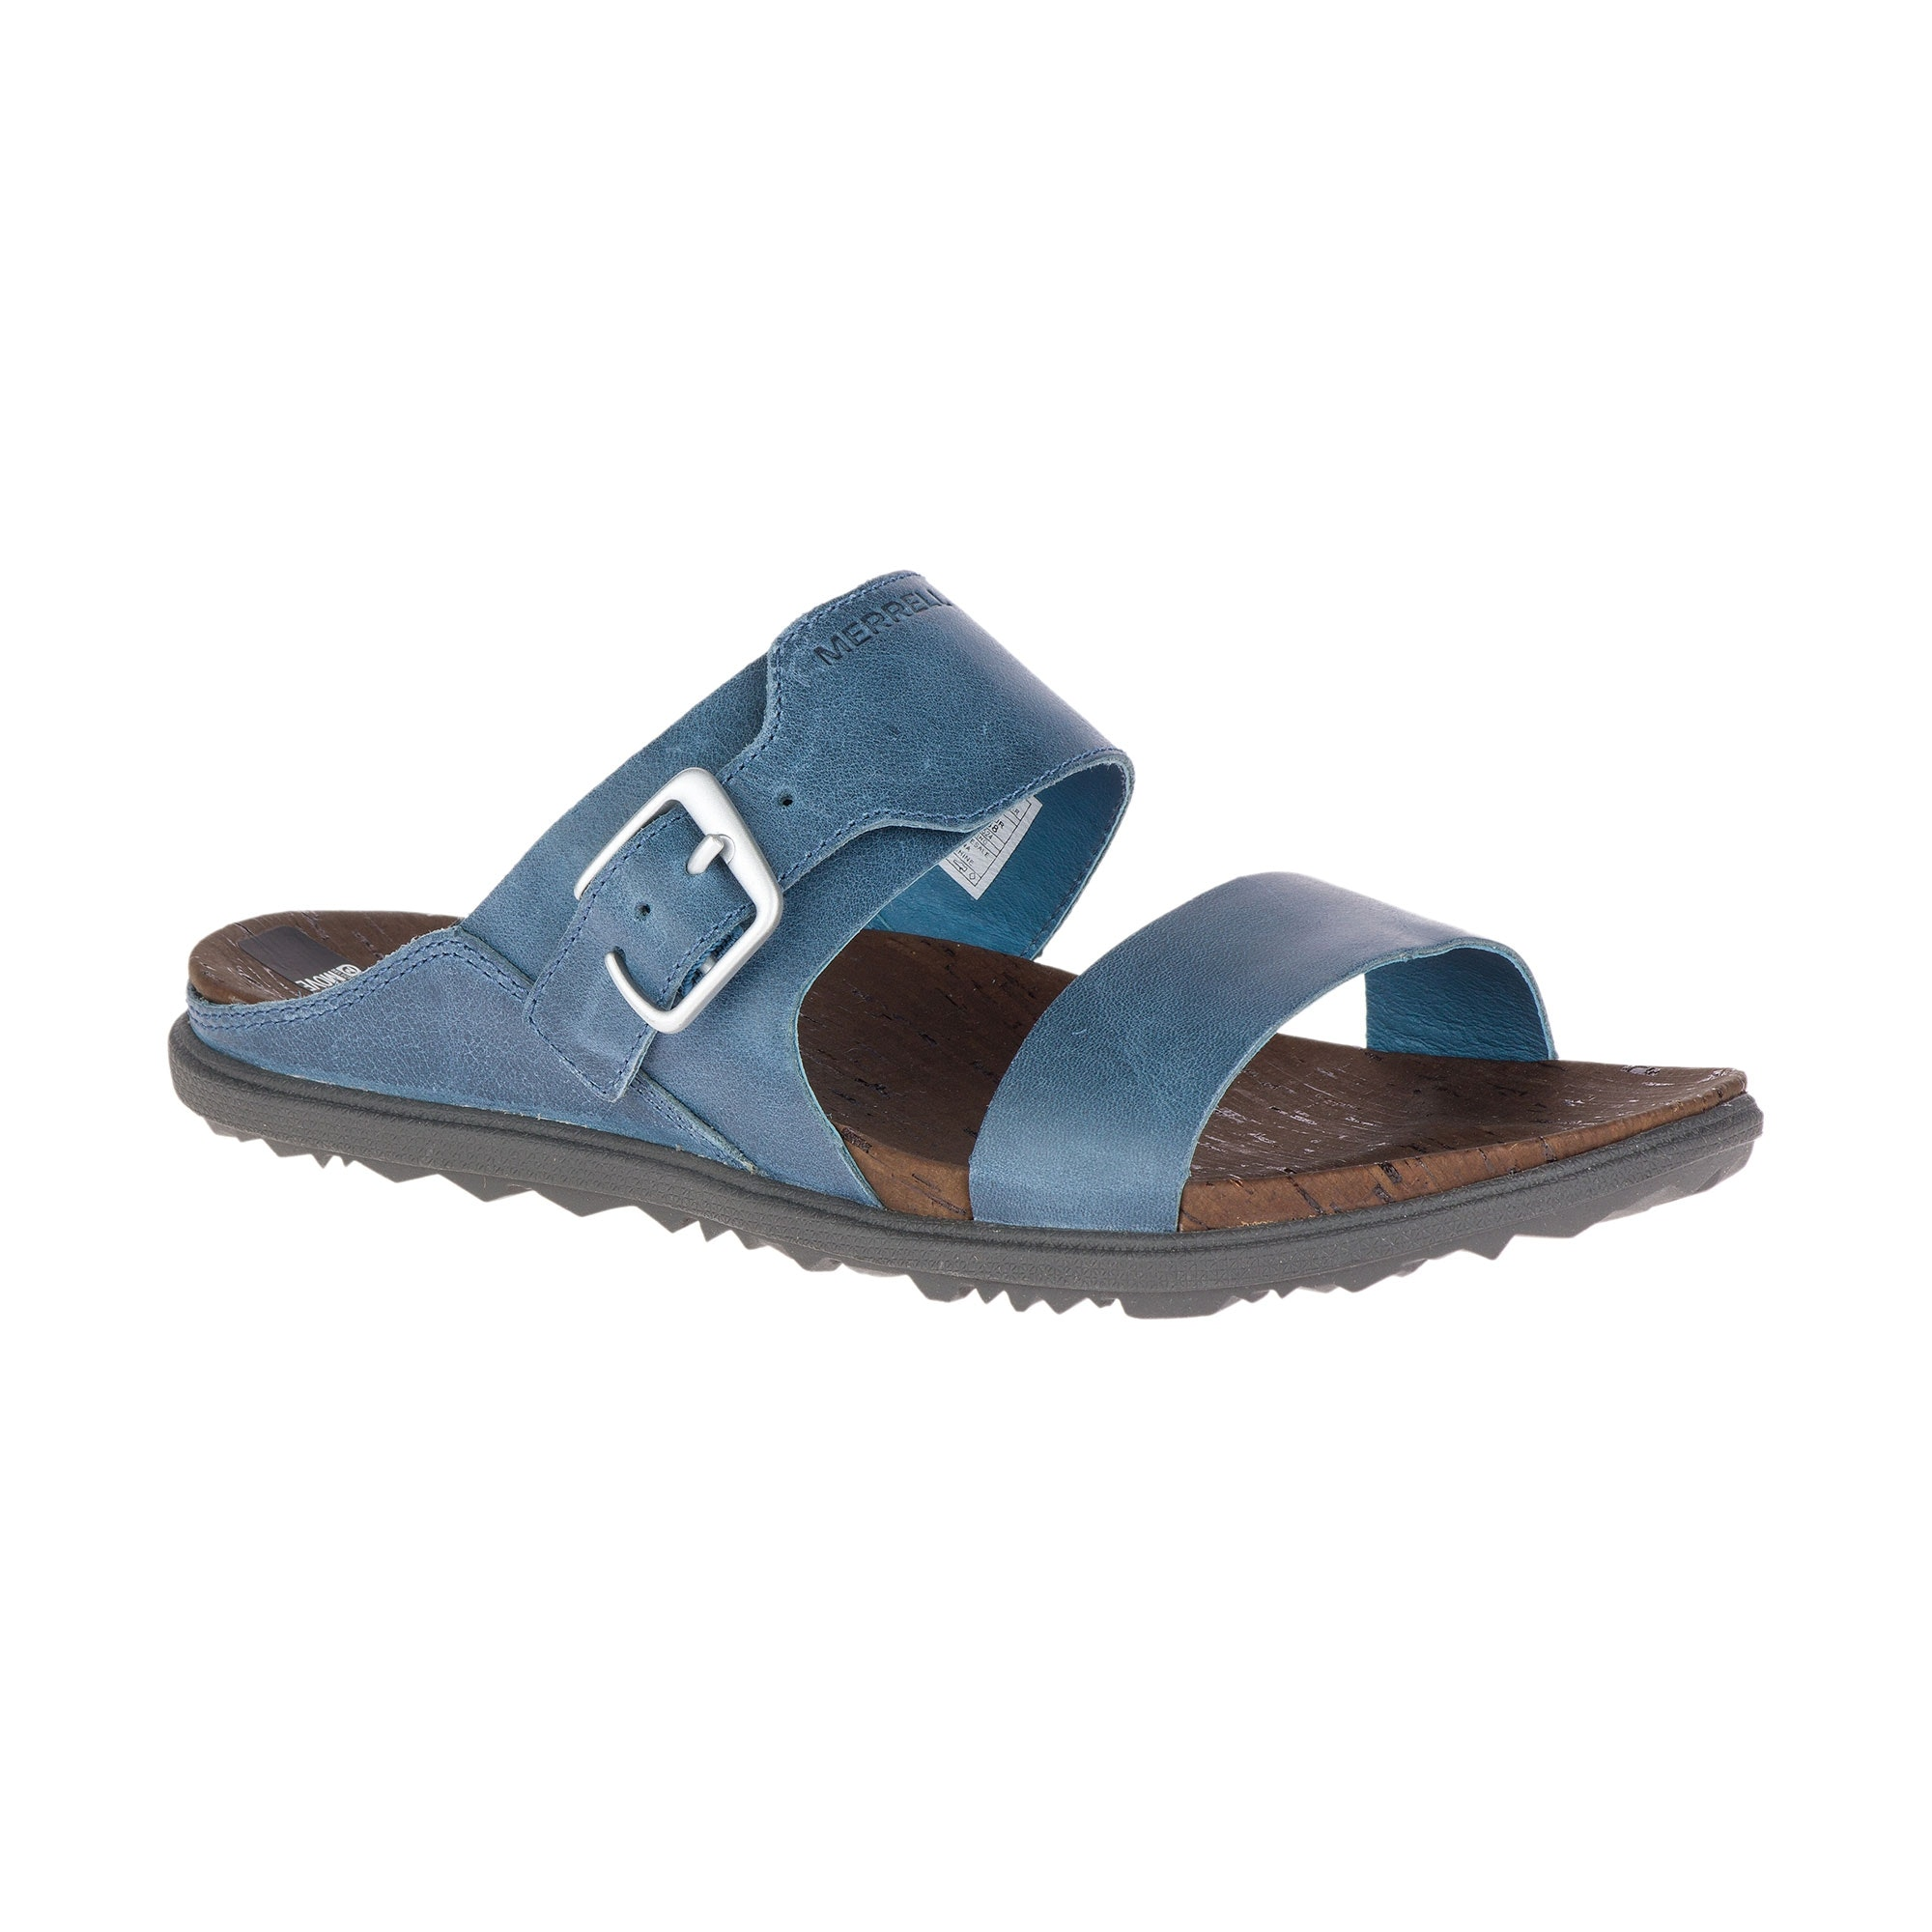 Merrell Women's Around Town Buckle Slide Sandals